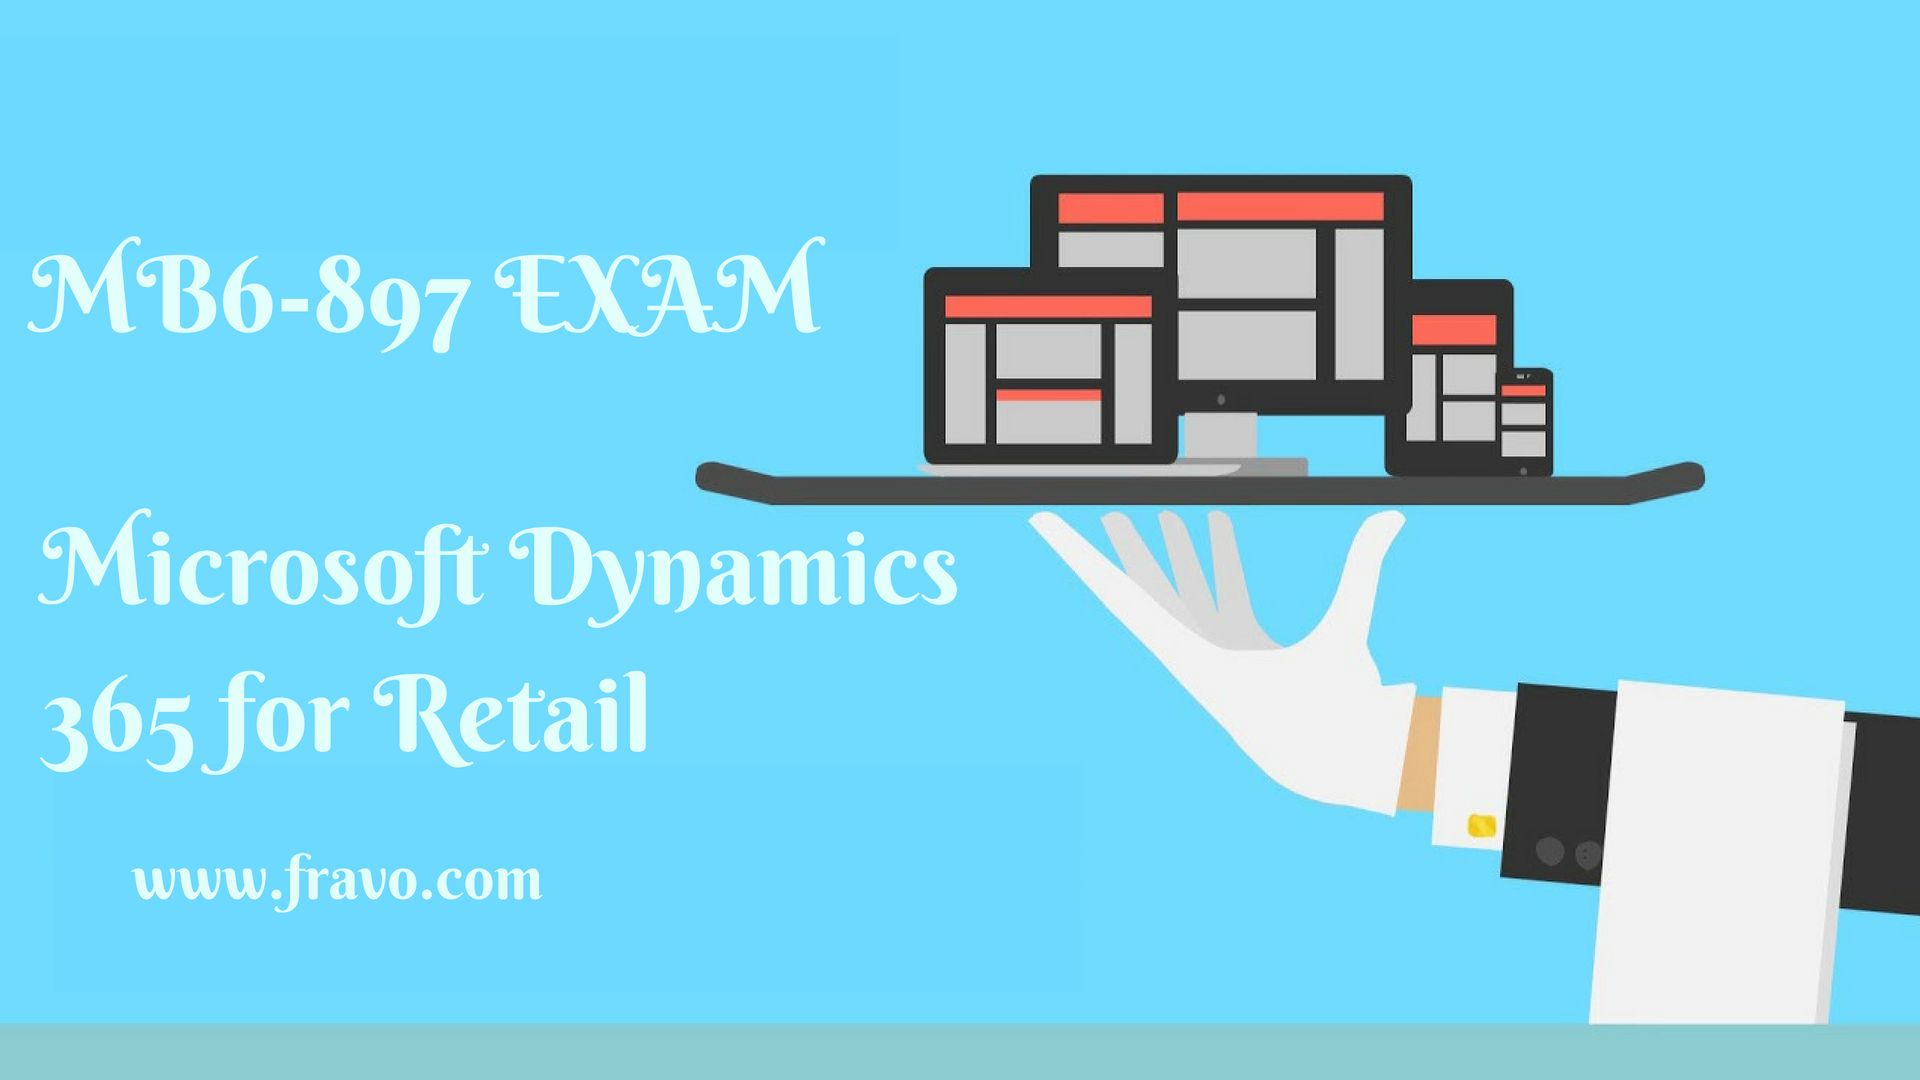 If you want to pass the Microsoft Dynamics 365 for Retail